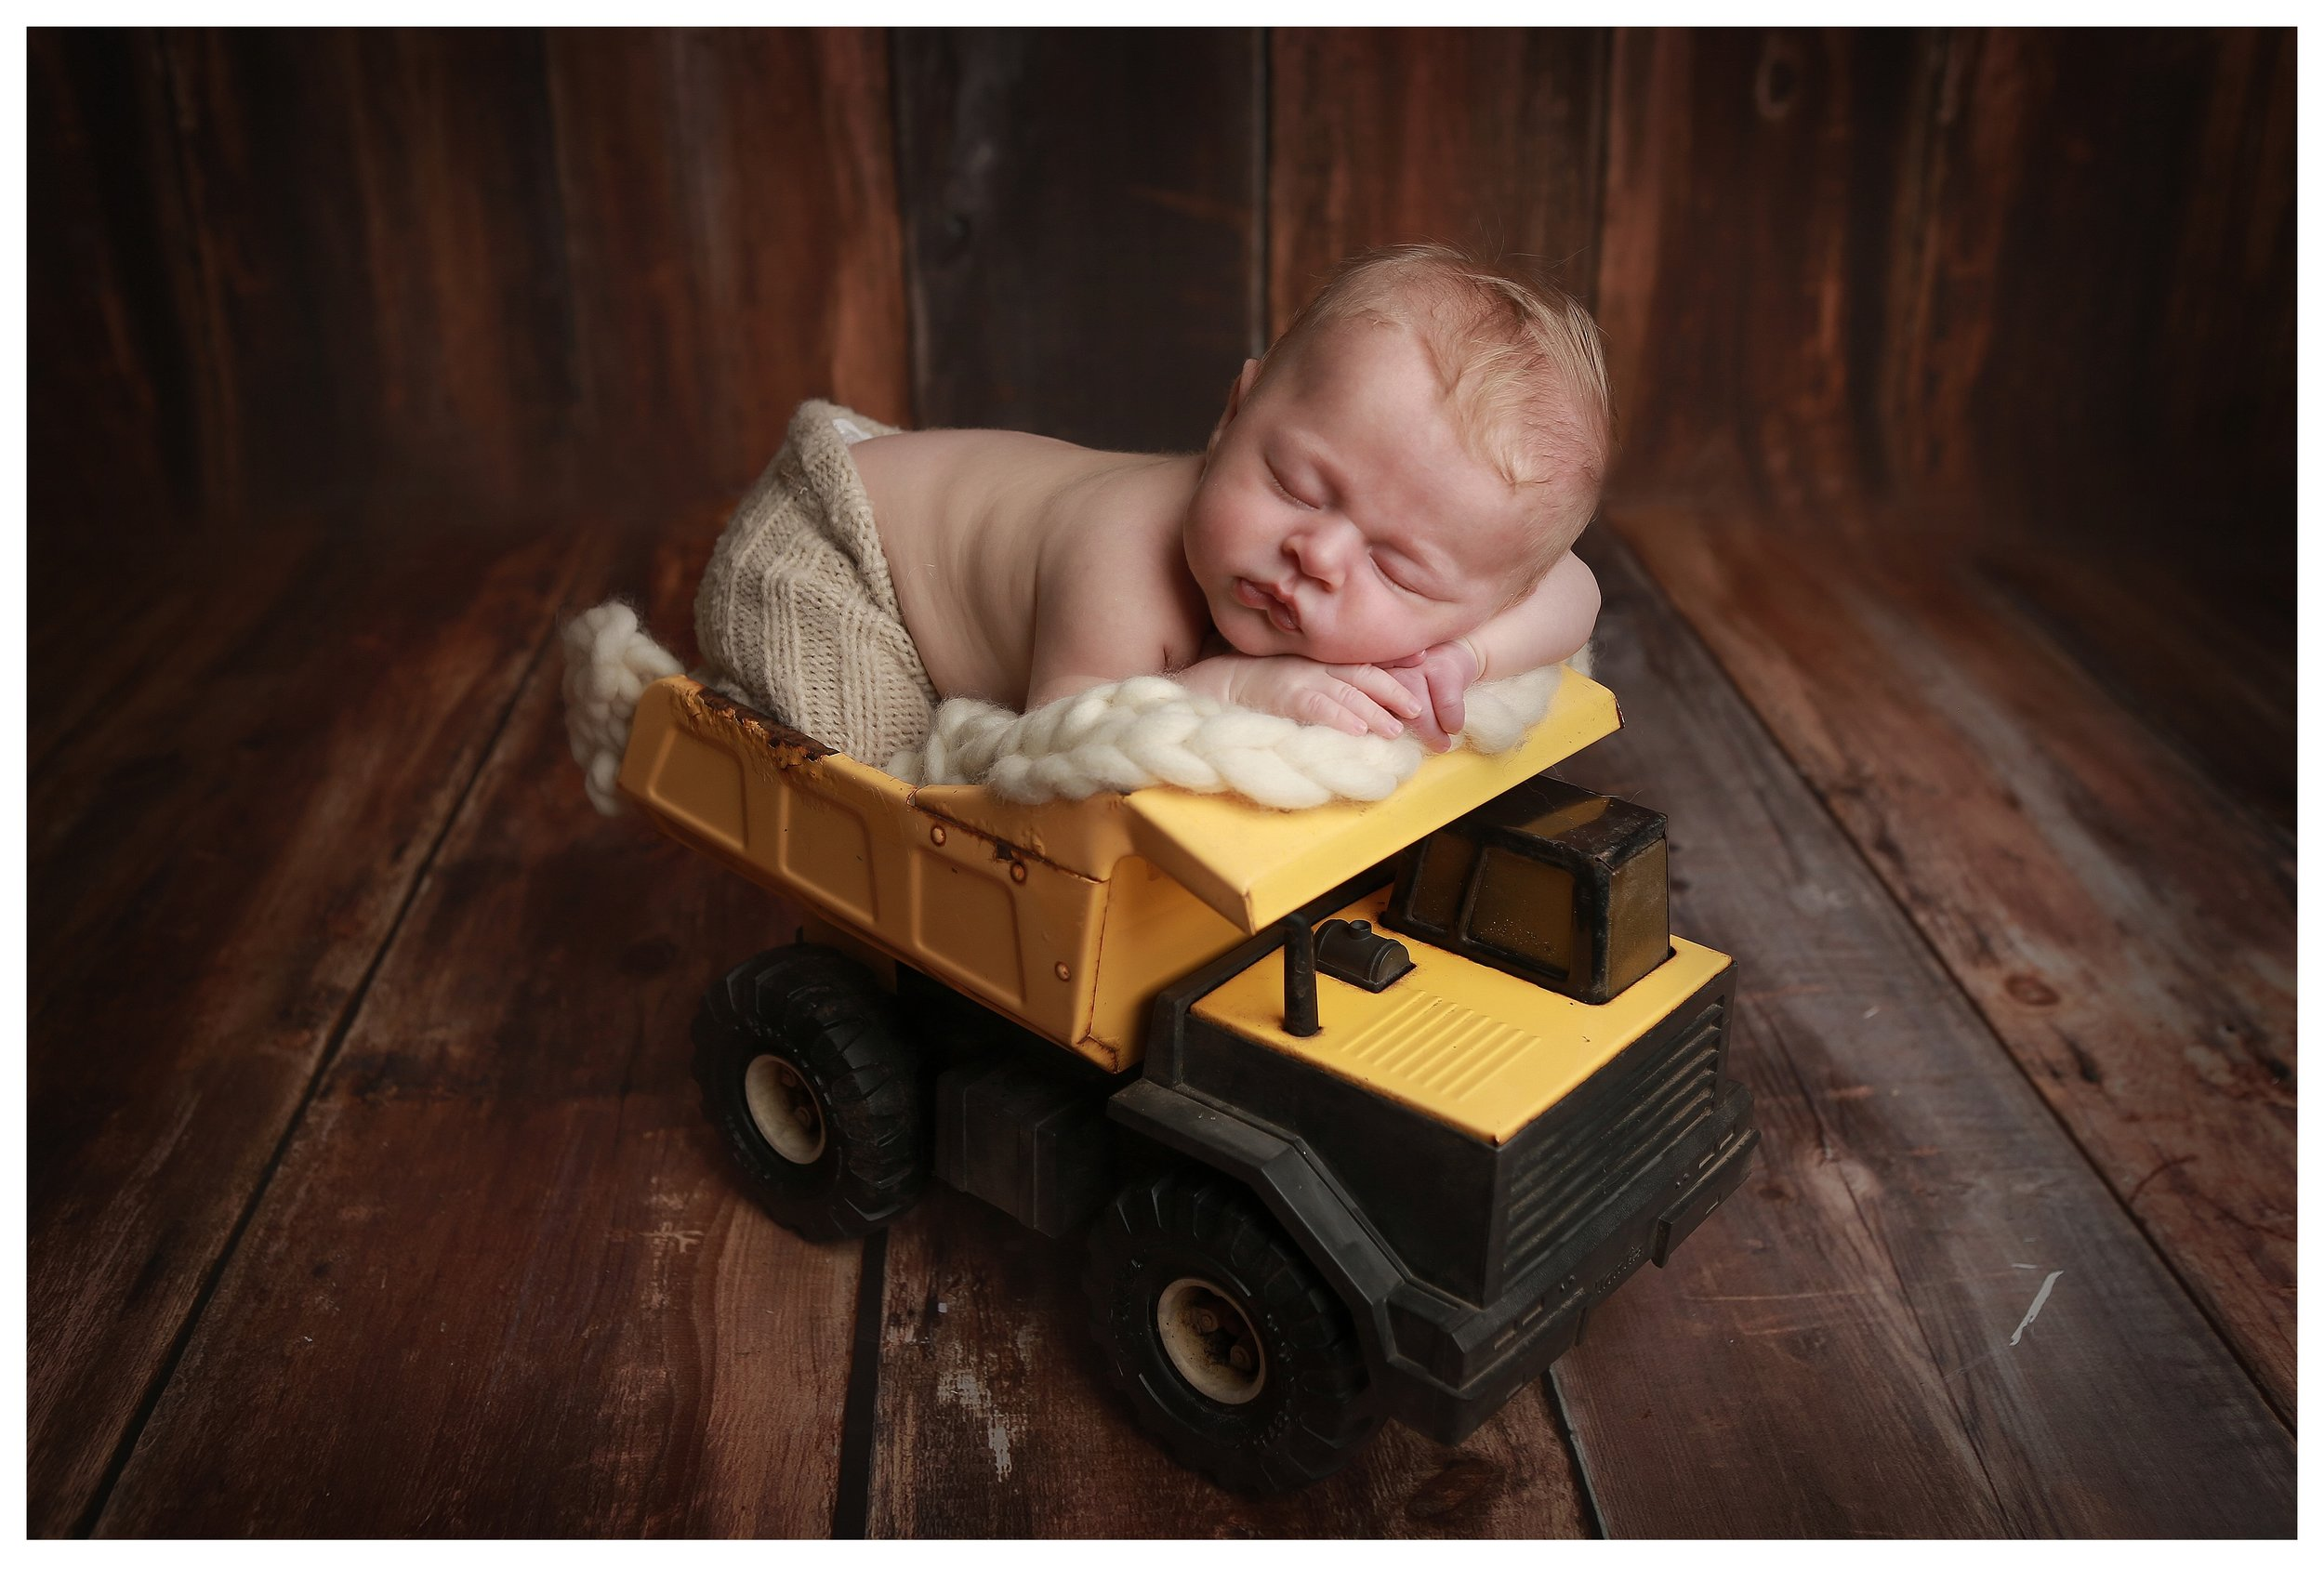 For the all around little boy pose i have a dump truck to place baby in.